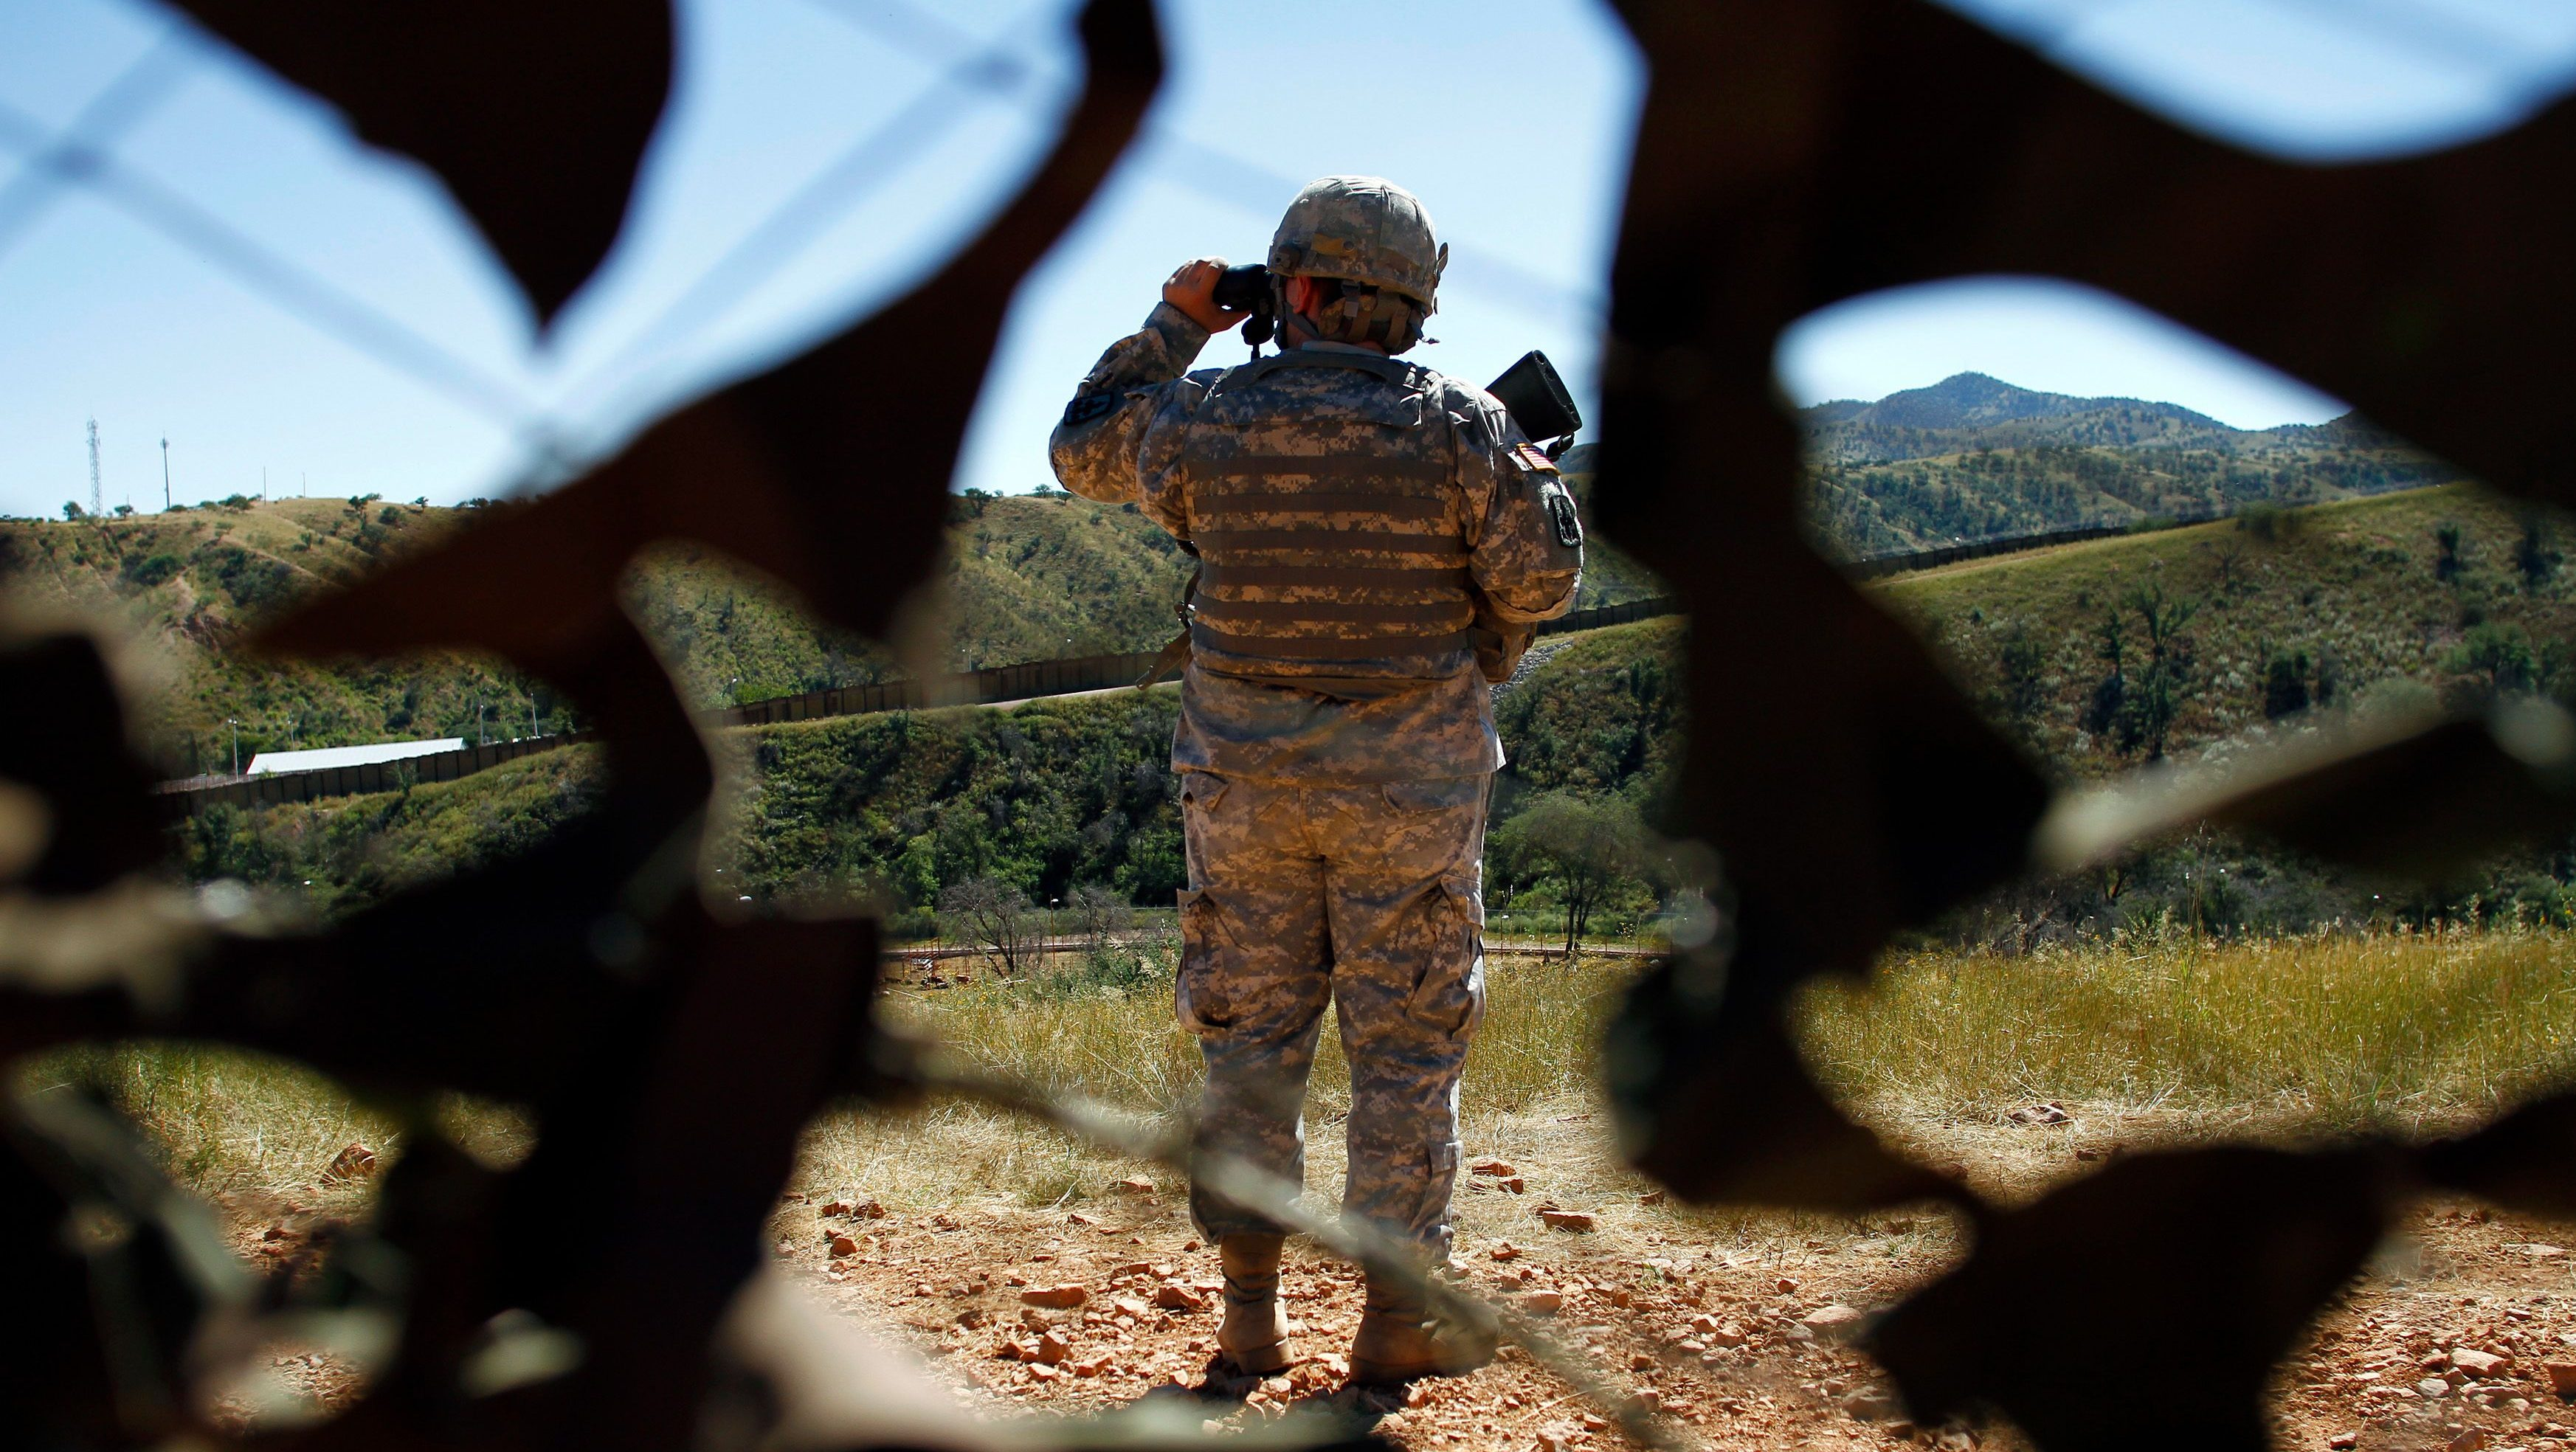 A member of the United States National Guard patrols along the U.S. and Mexico border in Nogales, Arizona in 2010.